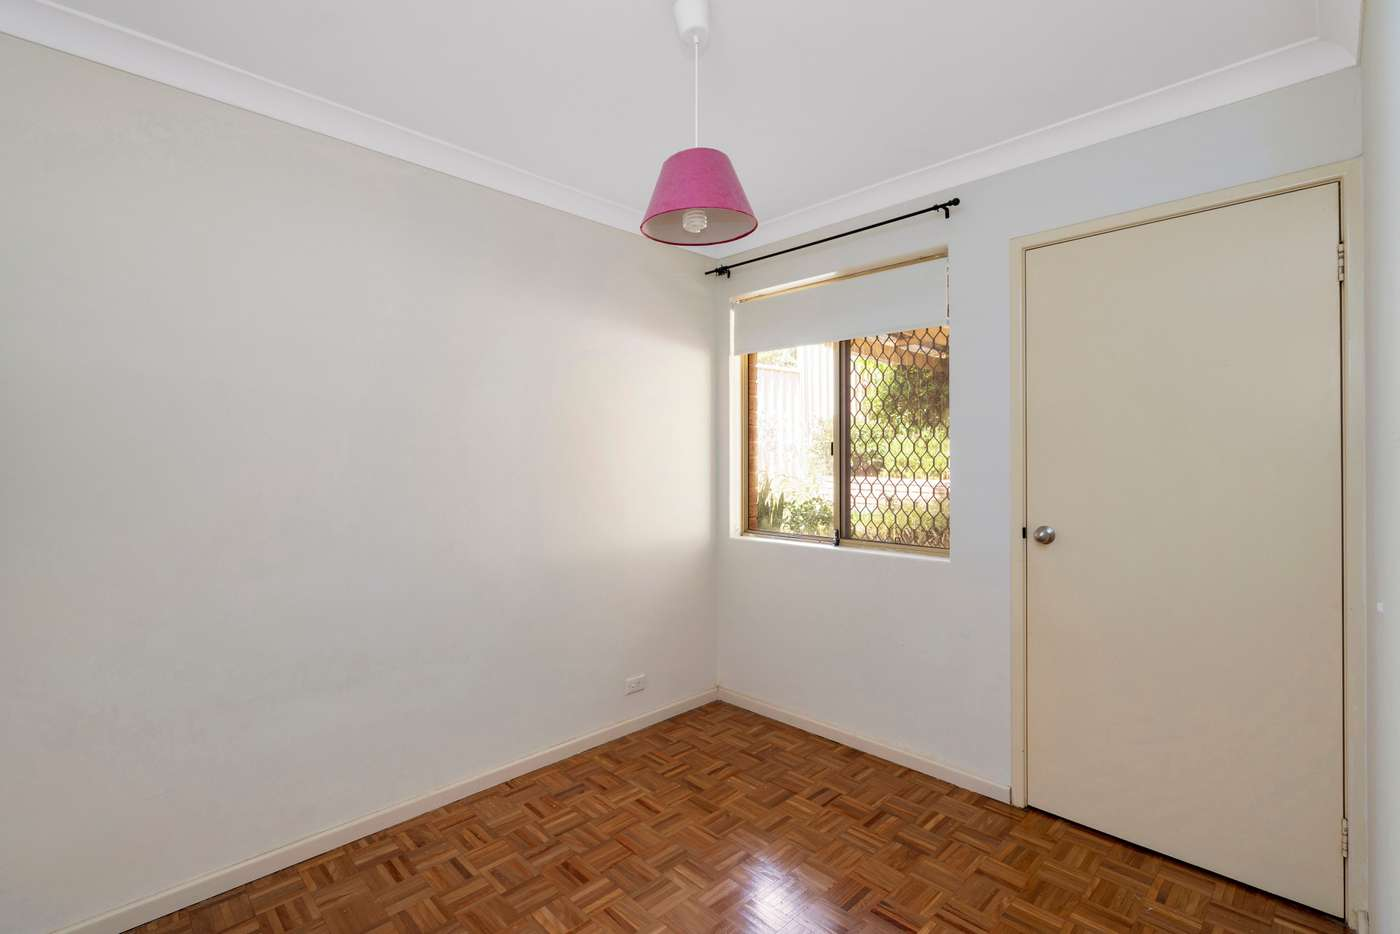 Sixth view of Homely house listing, 43 Riseley Street, Ardross WA 6153